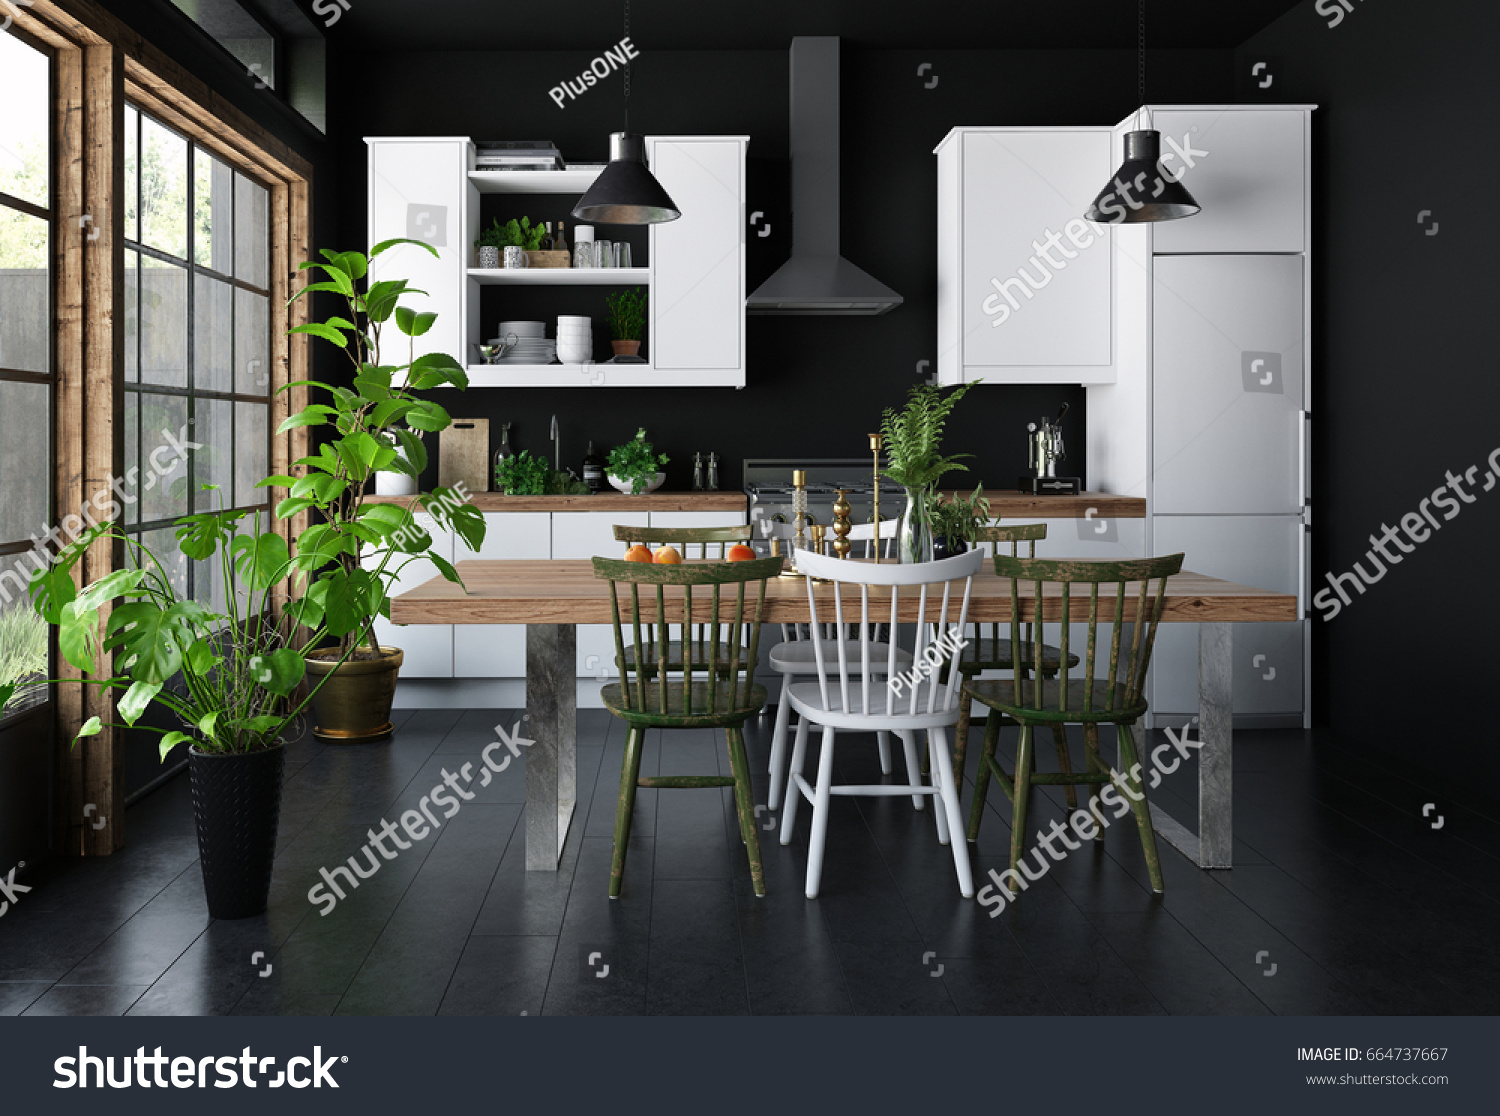 Spacious Kitchen Dark Interior Concept With Dining Table Black Walls And Wooden Floor